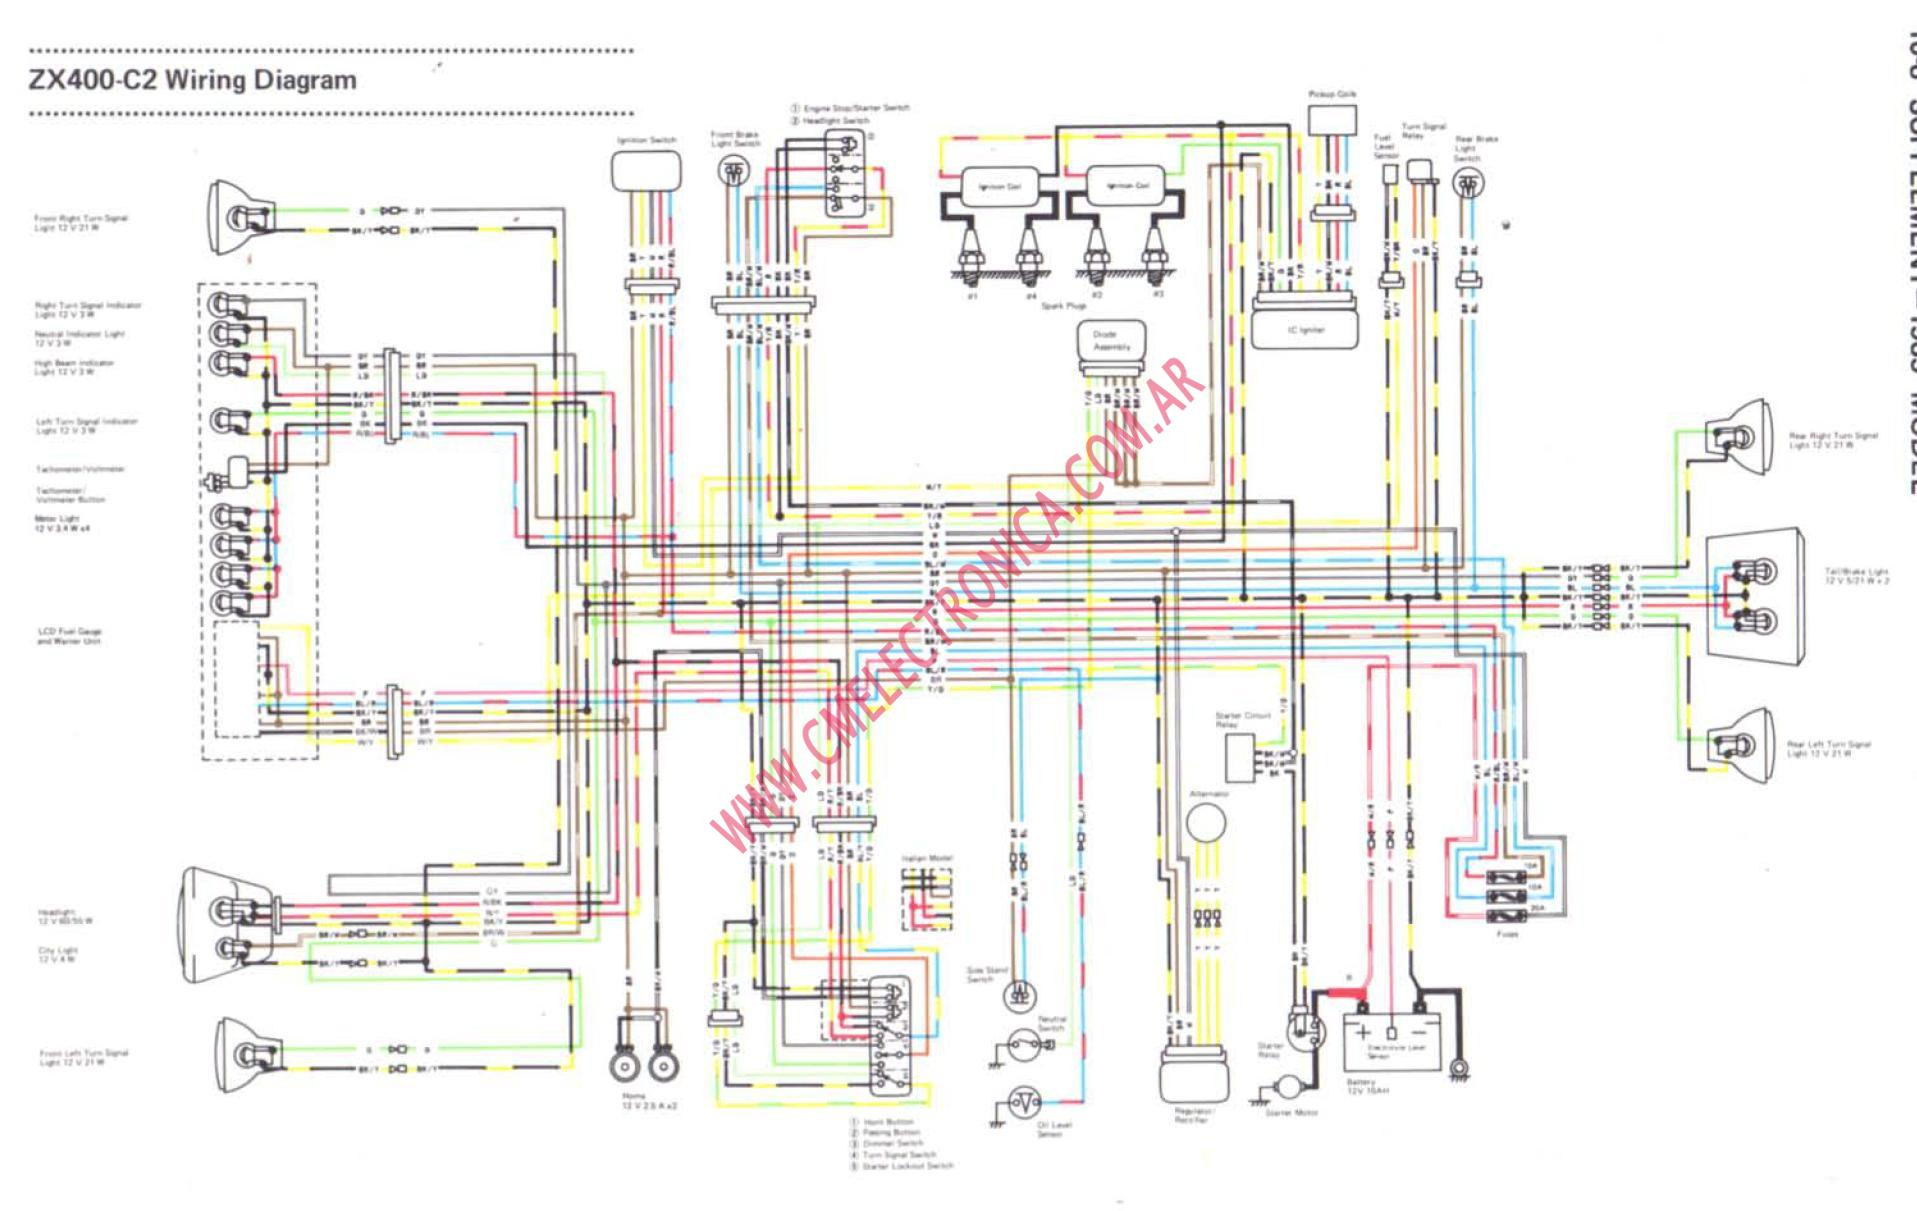 hight resolution of kawasaki gpz 400 wiring diagram diagrams online kawasaki gpz 400 wiring diagram